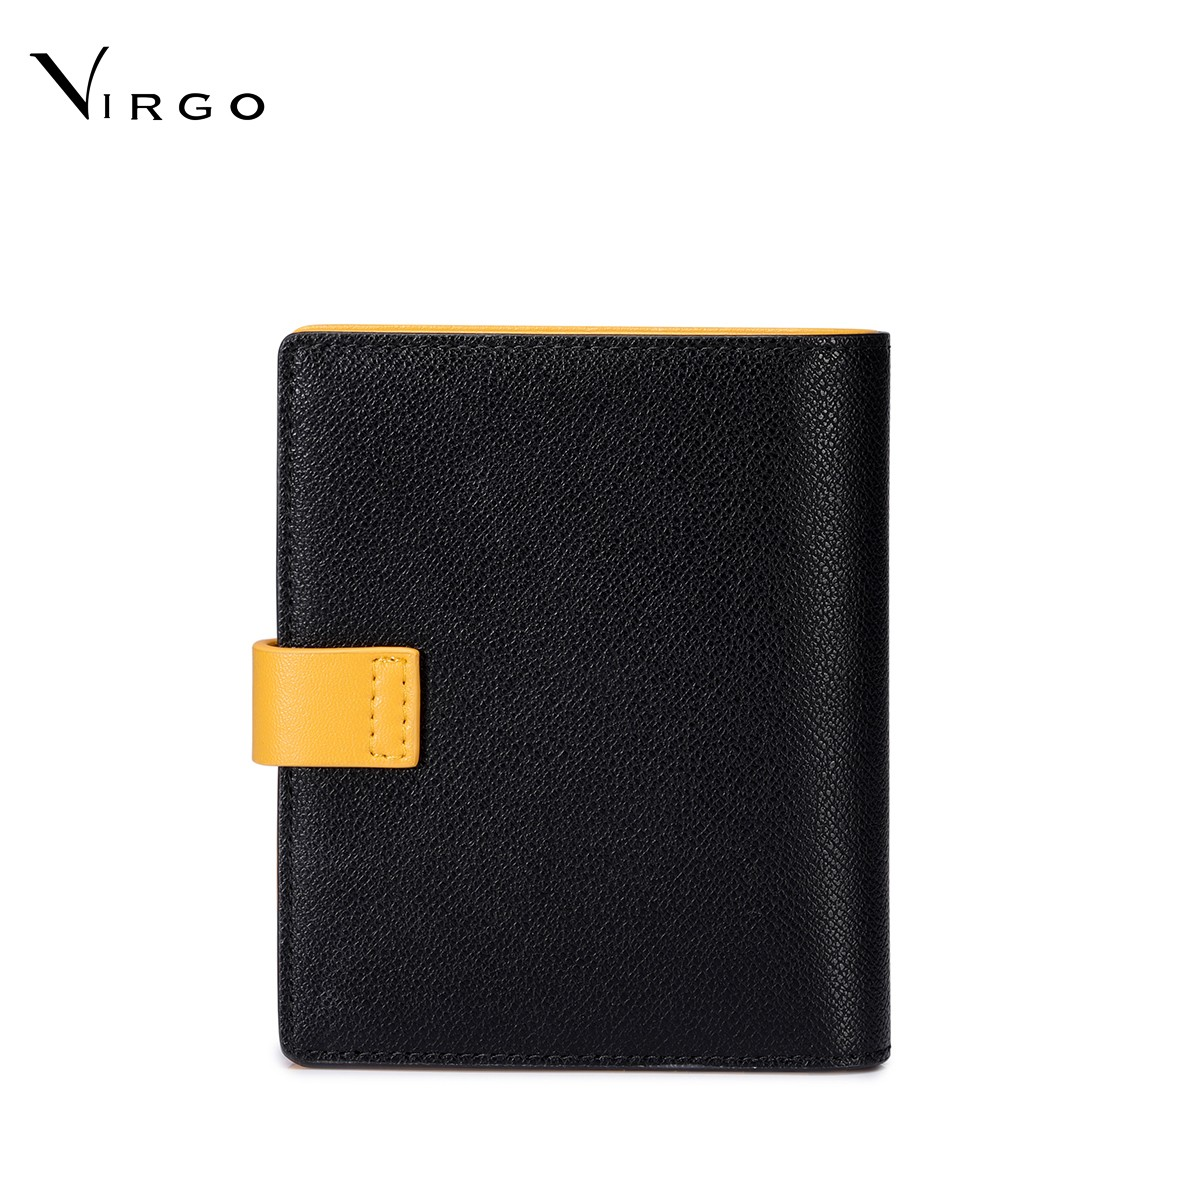 Ví nữ mini con ong Just Star Virgo VI287